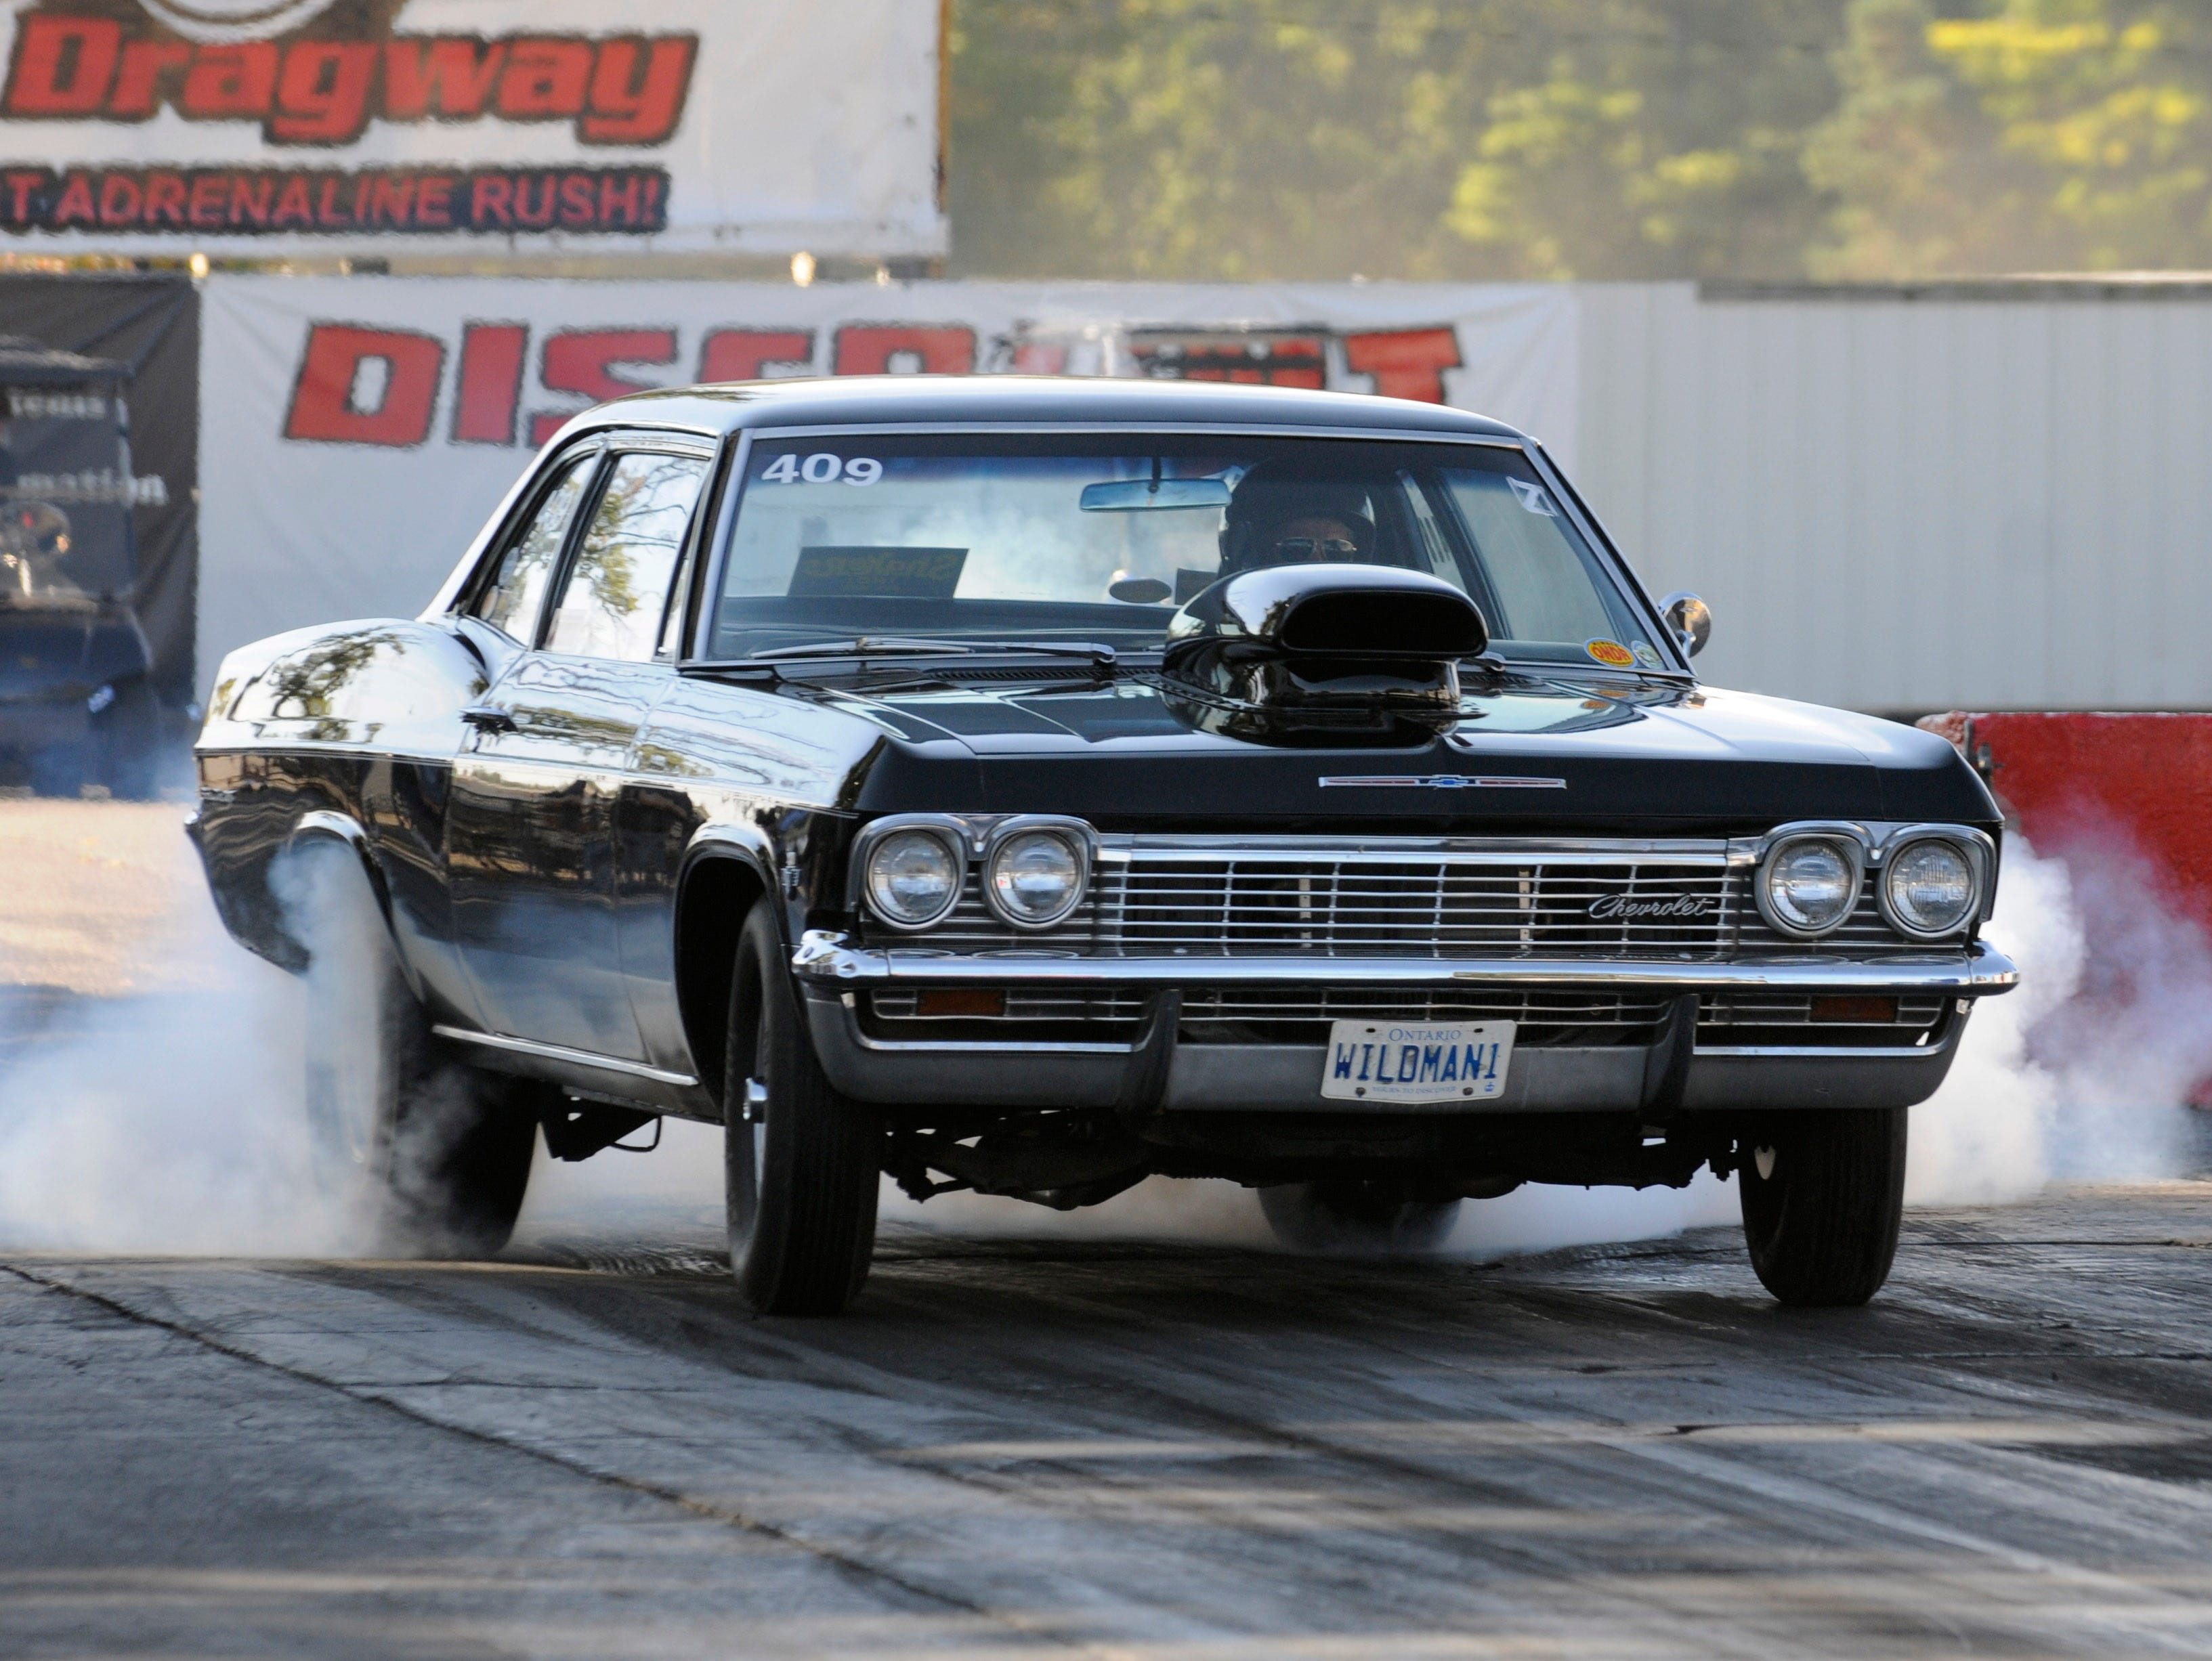 Bob Walker of Windsor performs a burnout in his 1965 Chevrolet Impala with a 409 cubic inch engine, Saturday Sept. 27, 2014, during nostalgia drag racing at Milan Dragway in Milan.